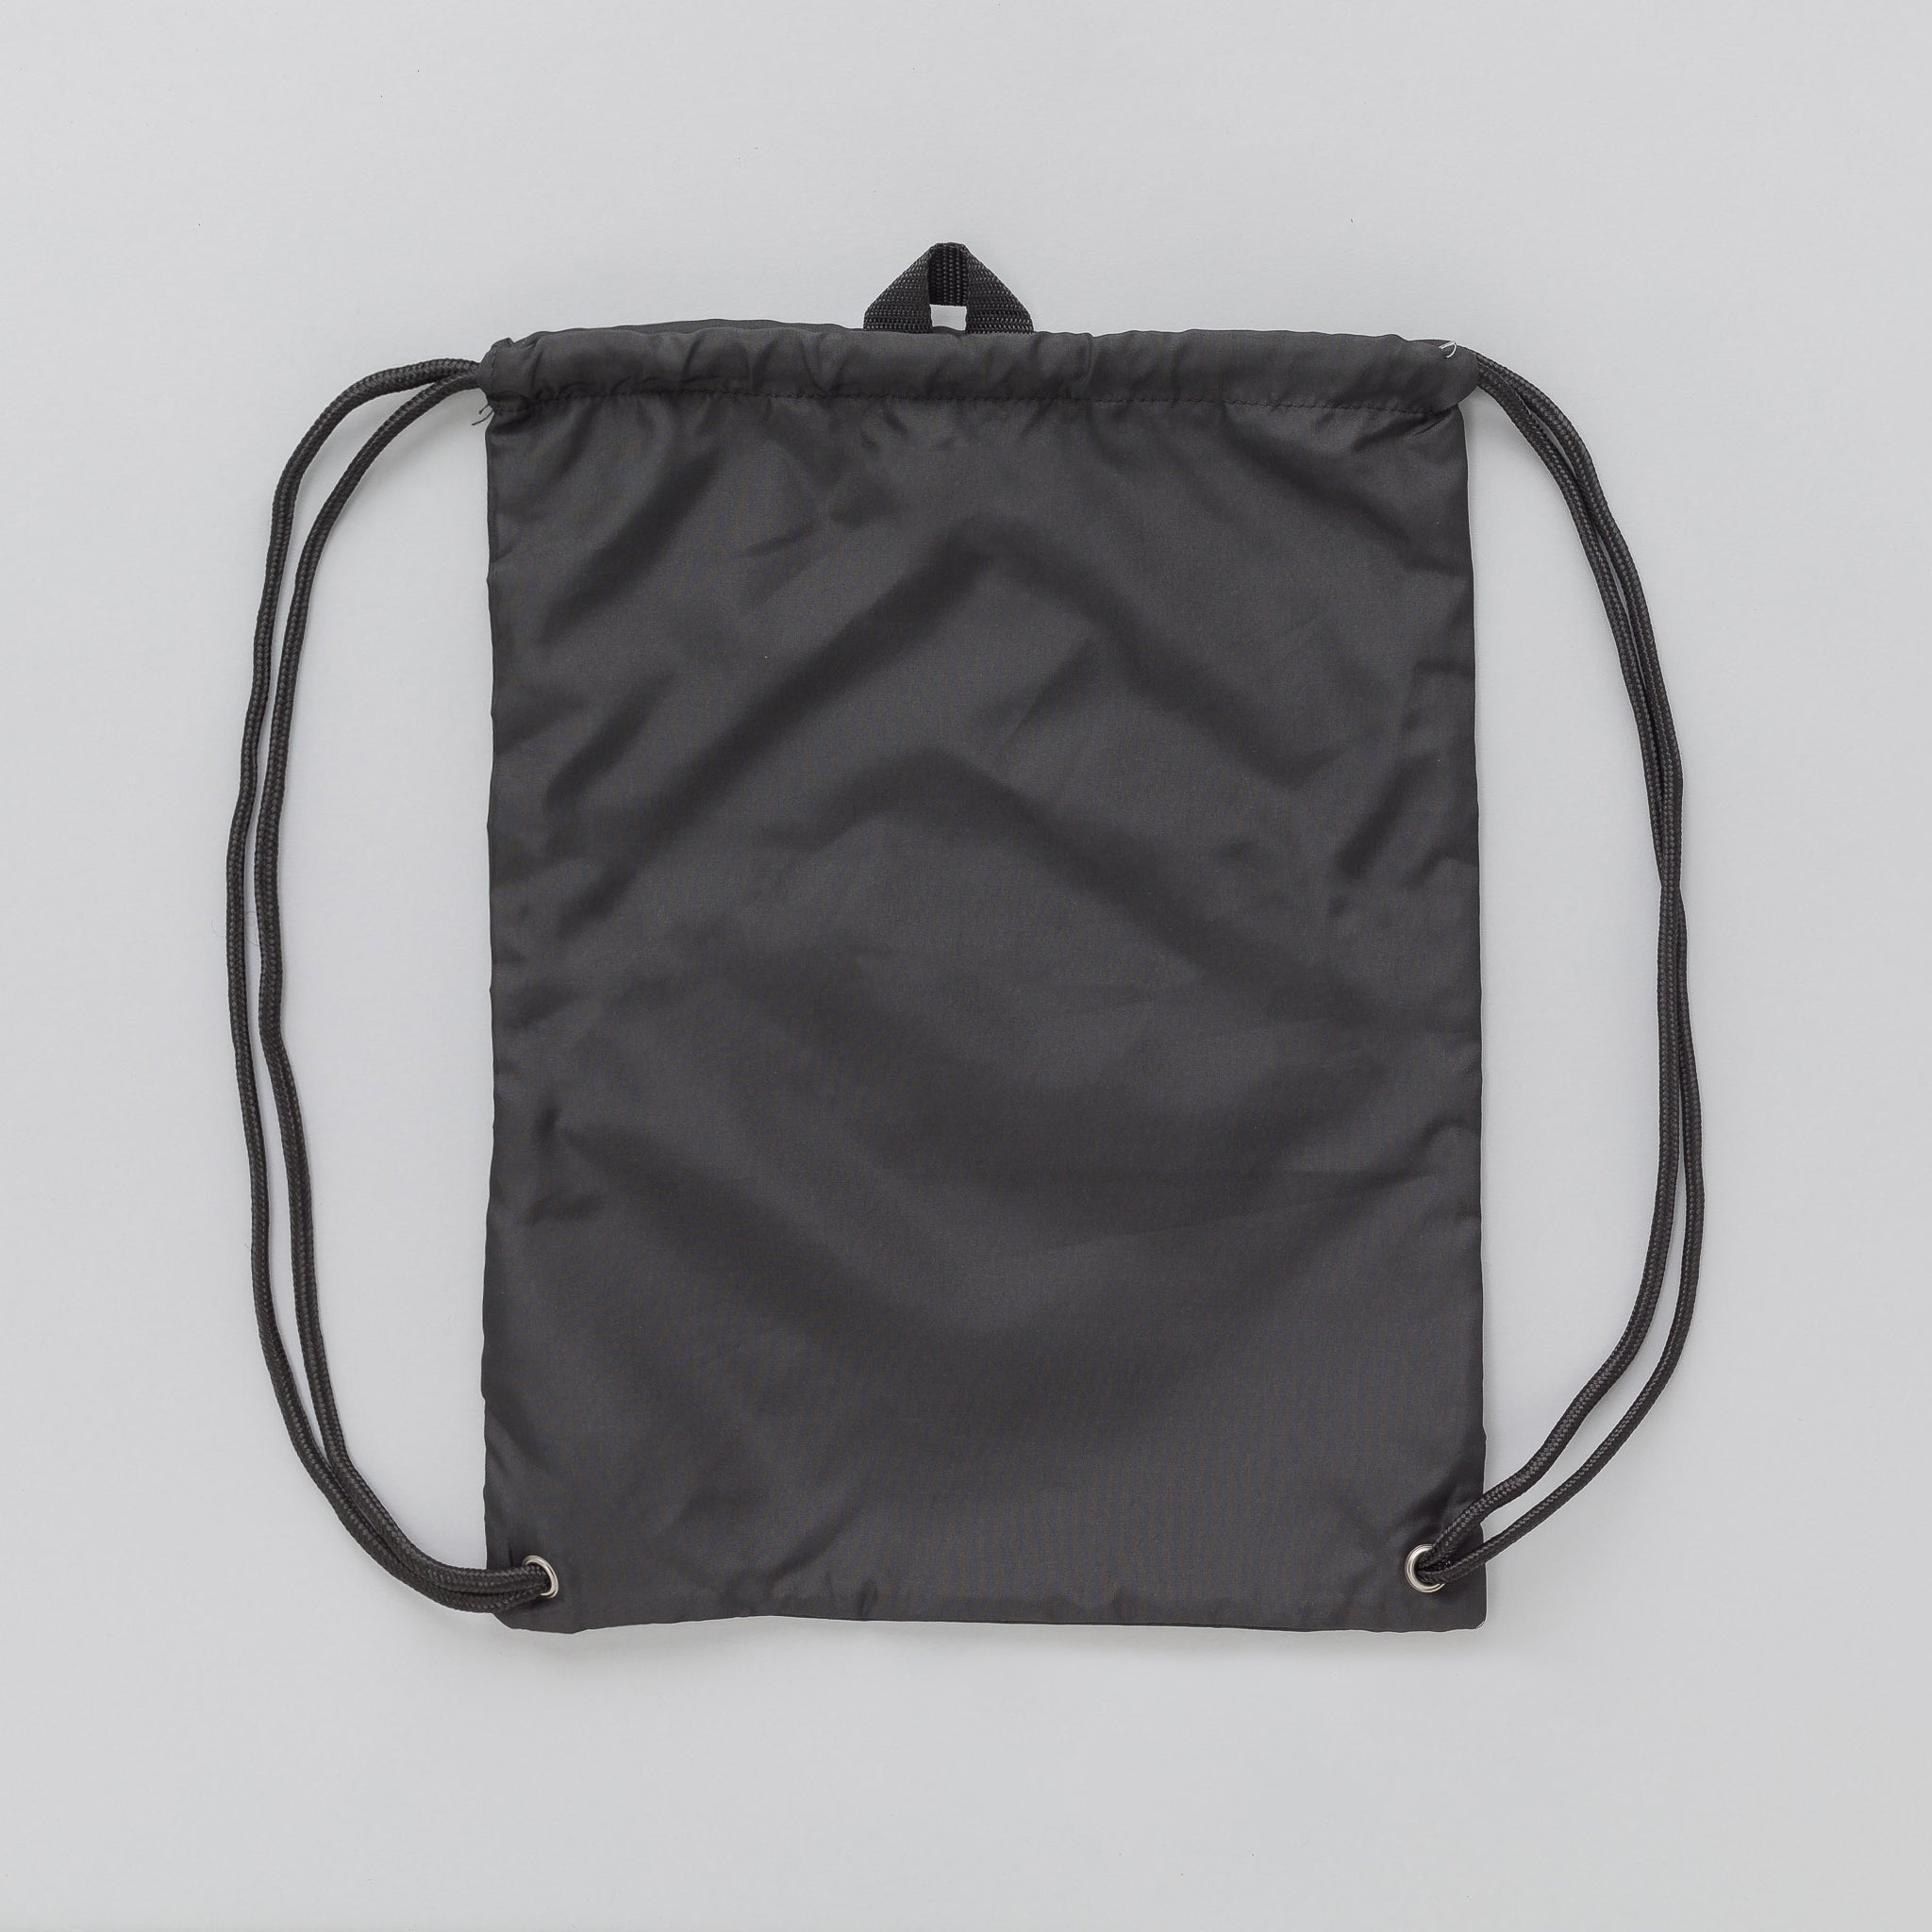 x adidas Gymsack in Black